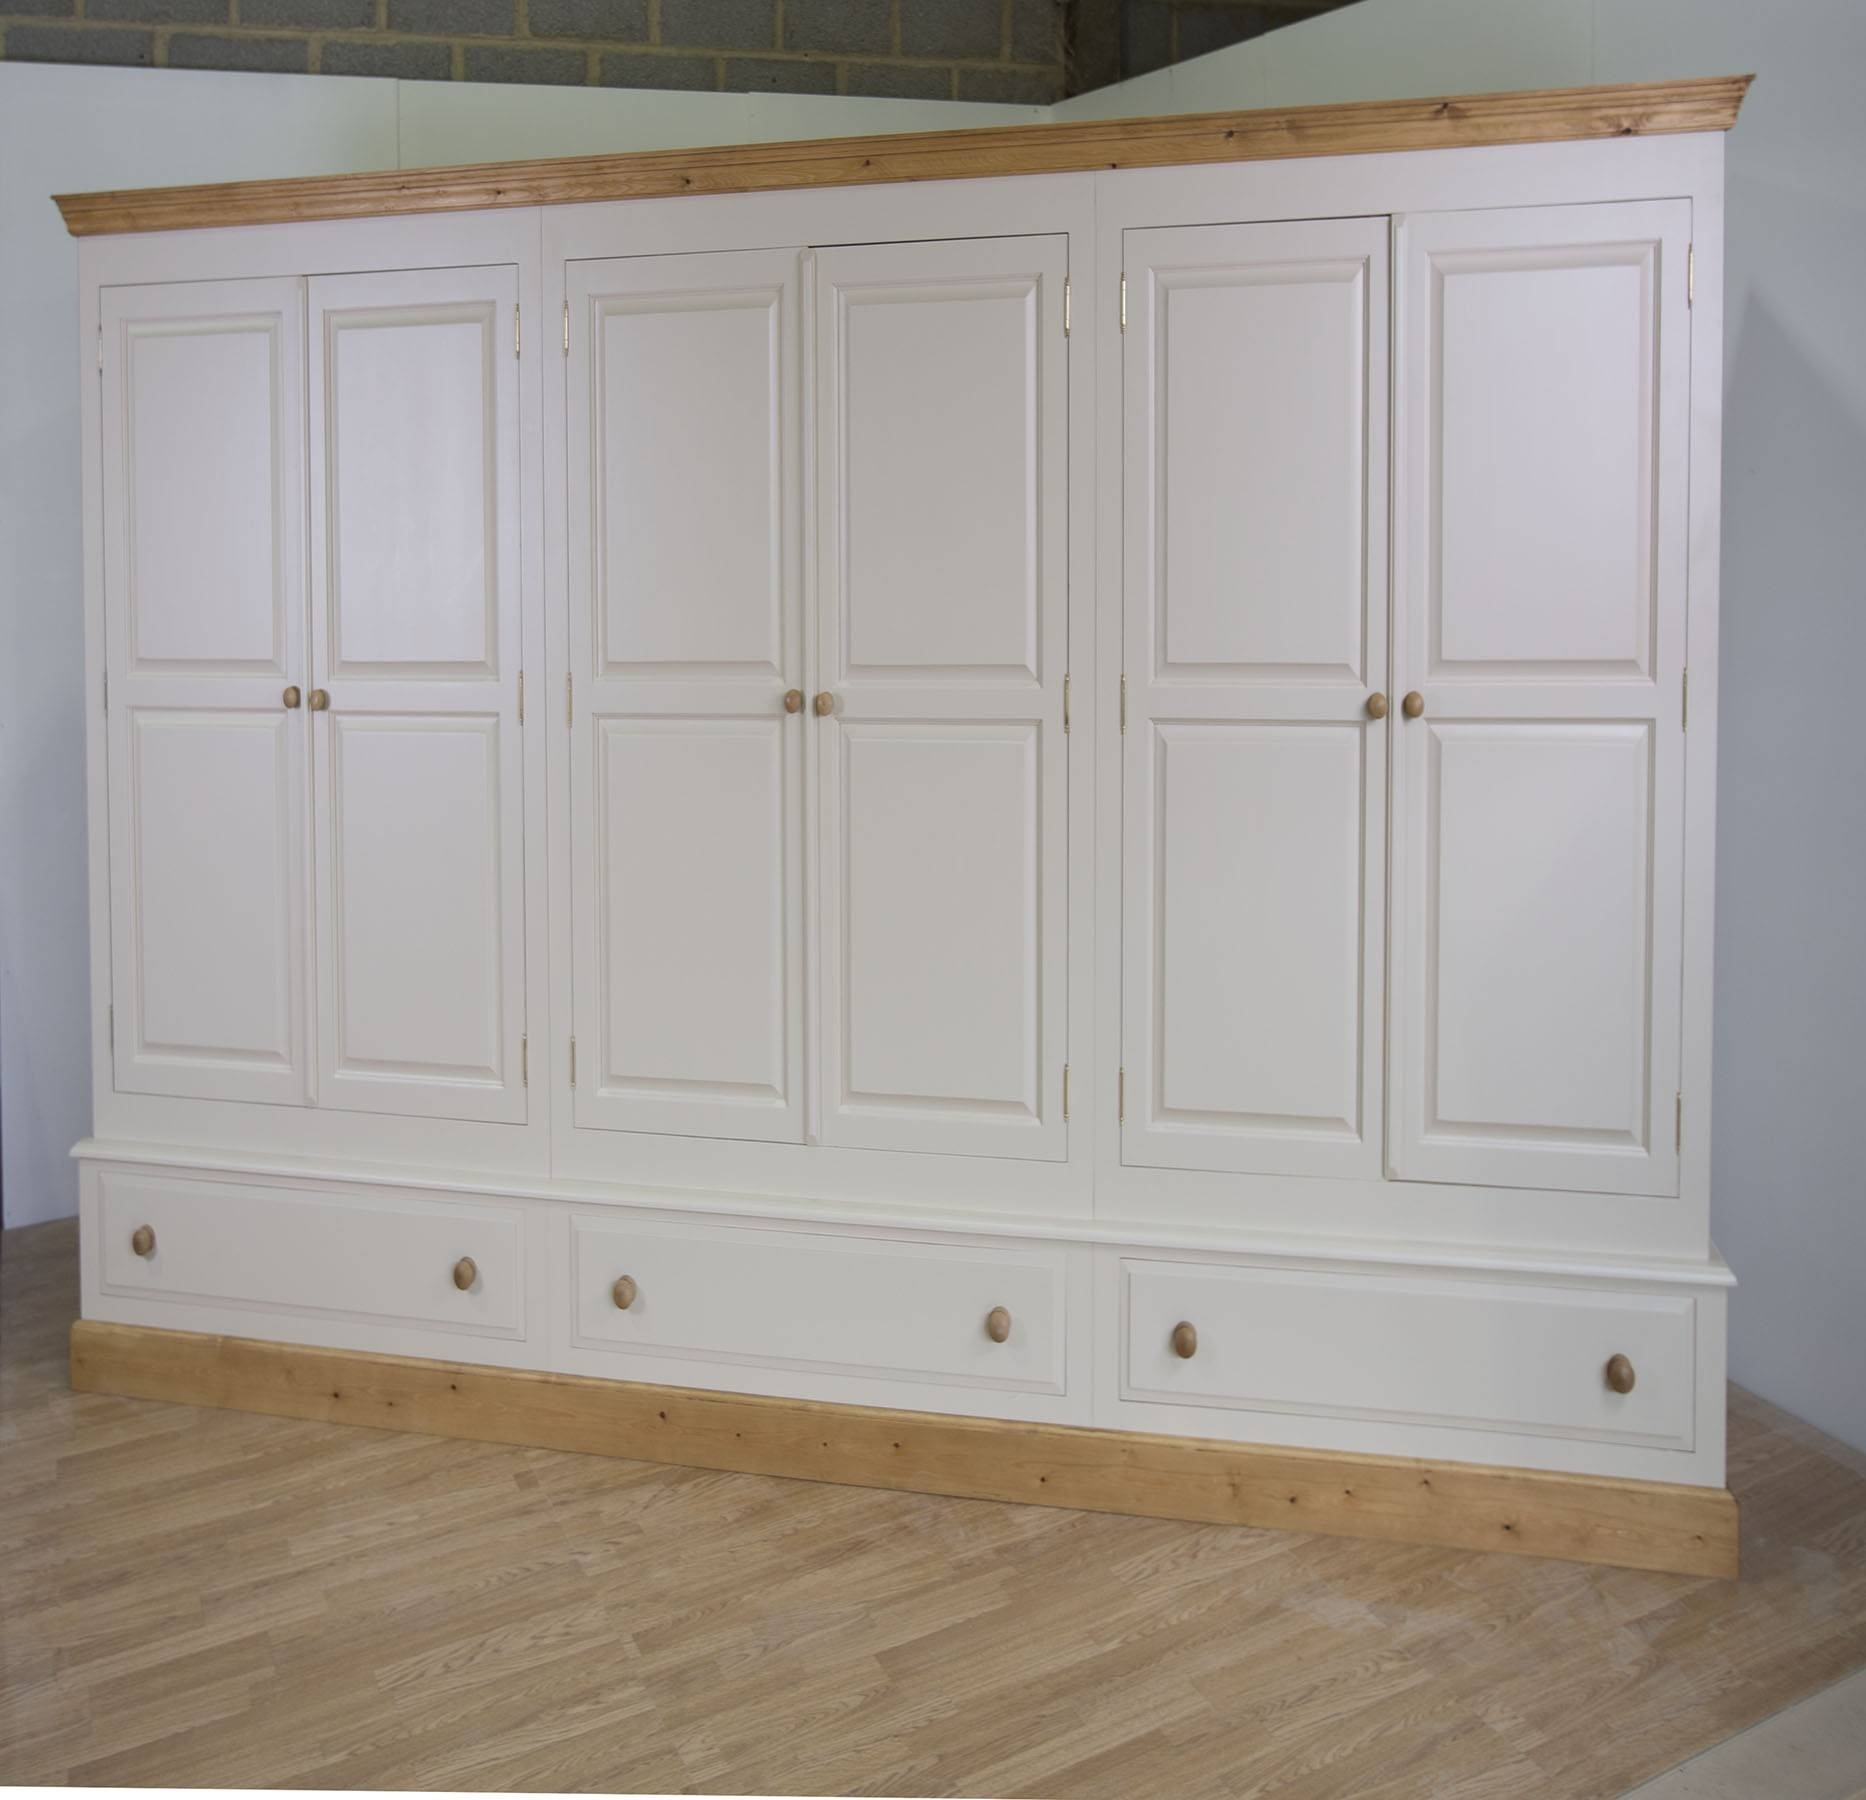 Farrow & Ball Painted Large 6 Door Wardrobe With Drawers within 6 Doors Wardrobes (Image 4 of 15)